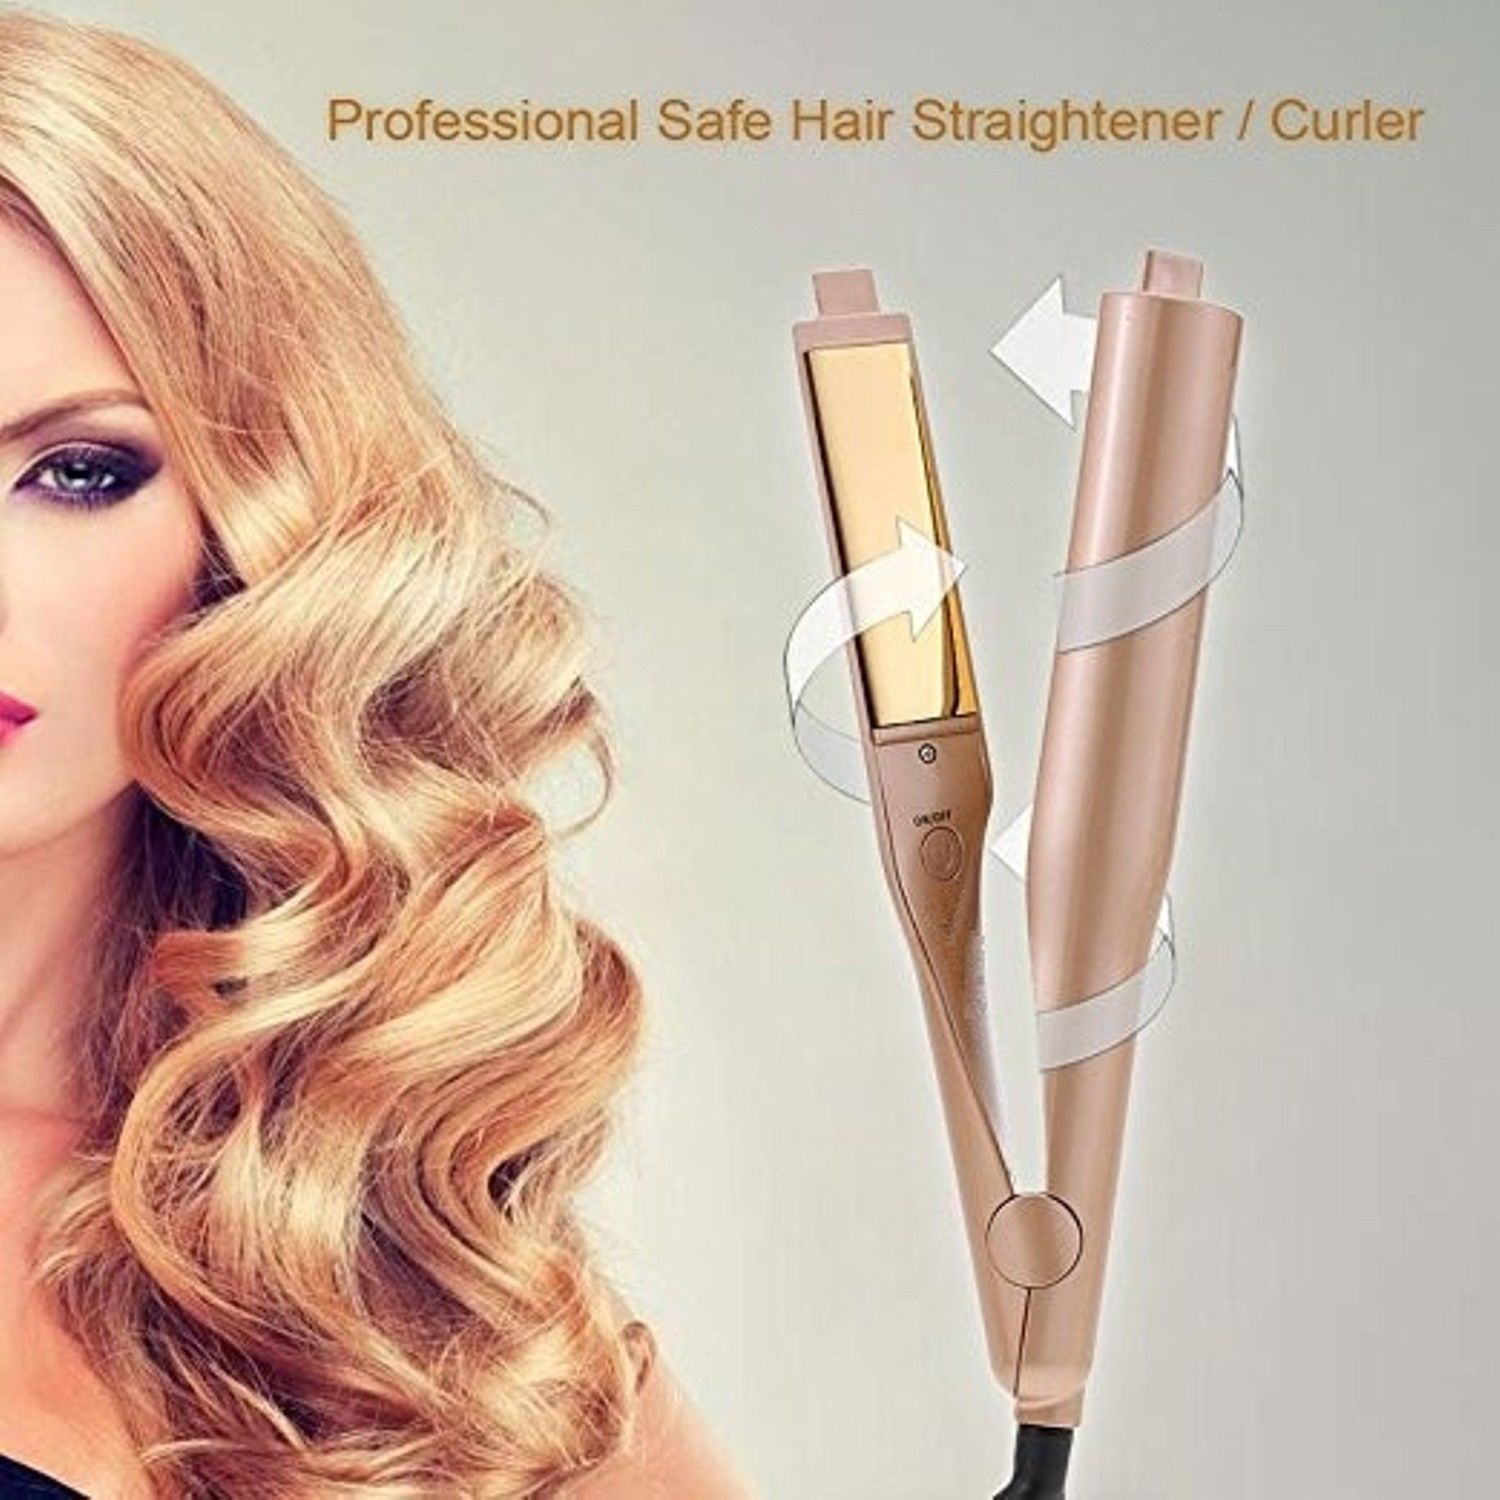 Professional 2in1 Straightener Irons Hair Curler Flat Iron Straightening Styling Tools Iron Curling Ceramic Wave iron mini curls hair straightener flat iron fast warm up ceramic electronic titanium straightening corrugated curling styling tools